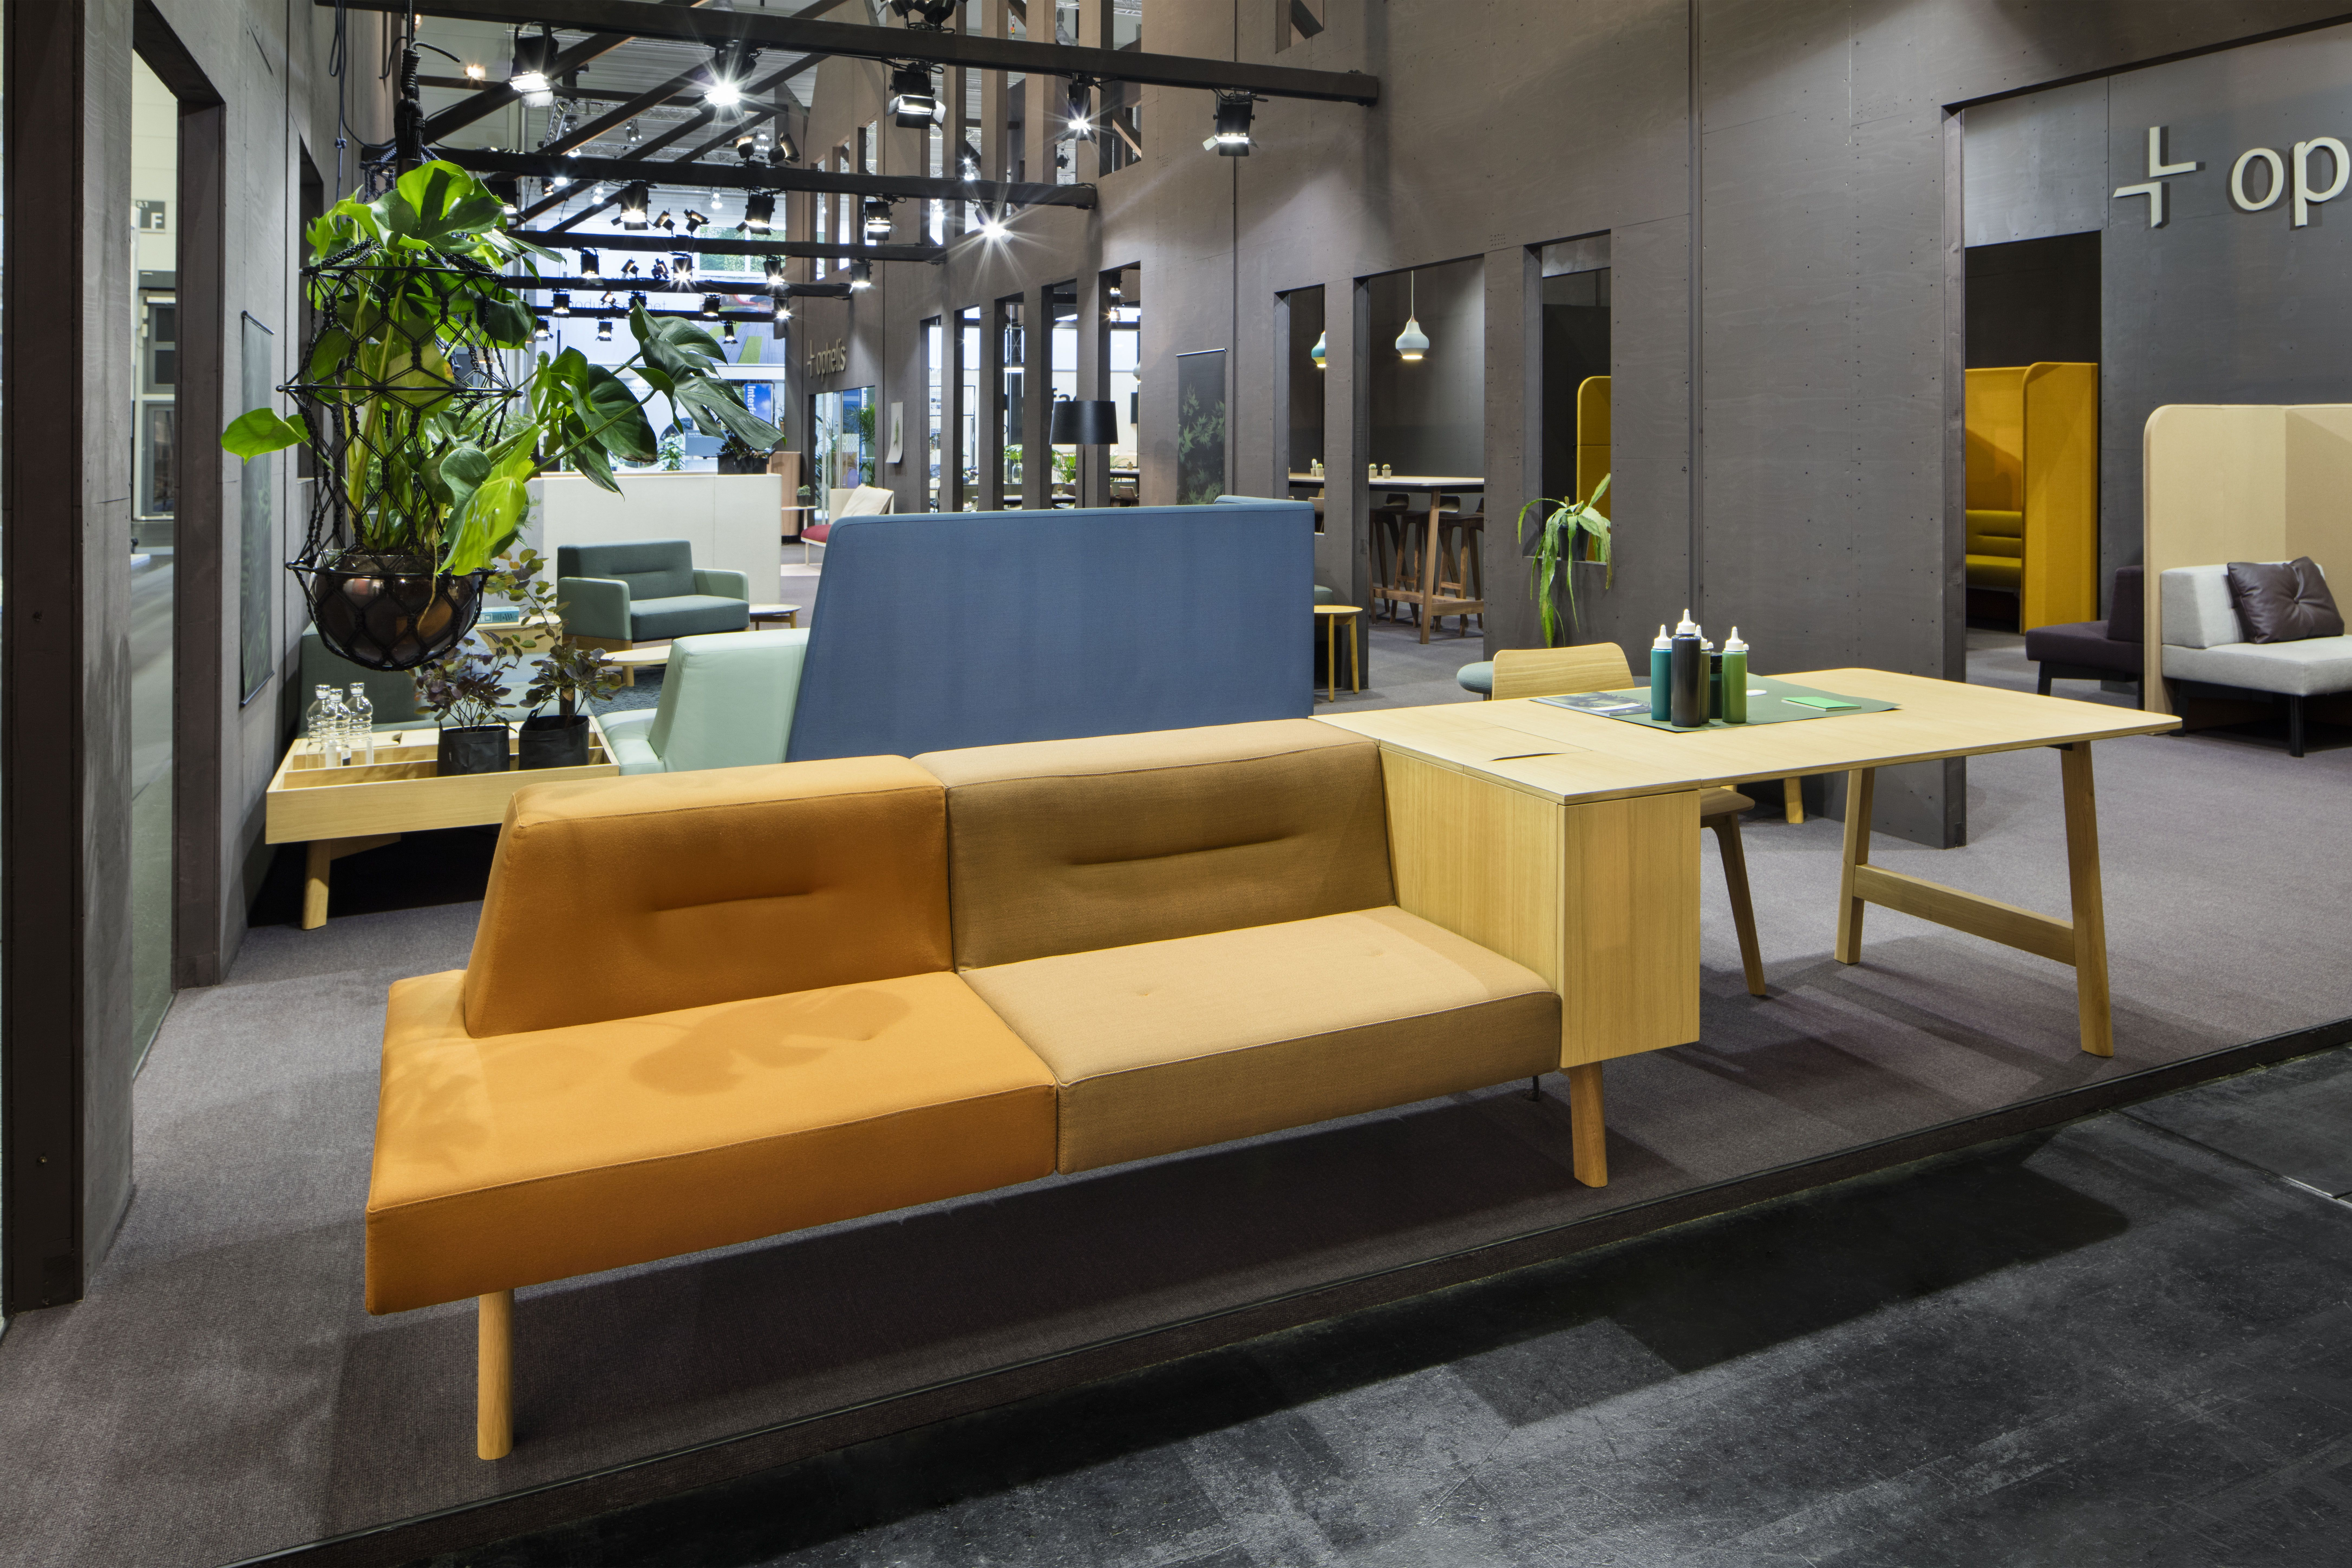 Ophelis Docks modular office furniture perfect for touchdown